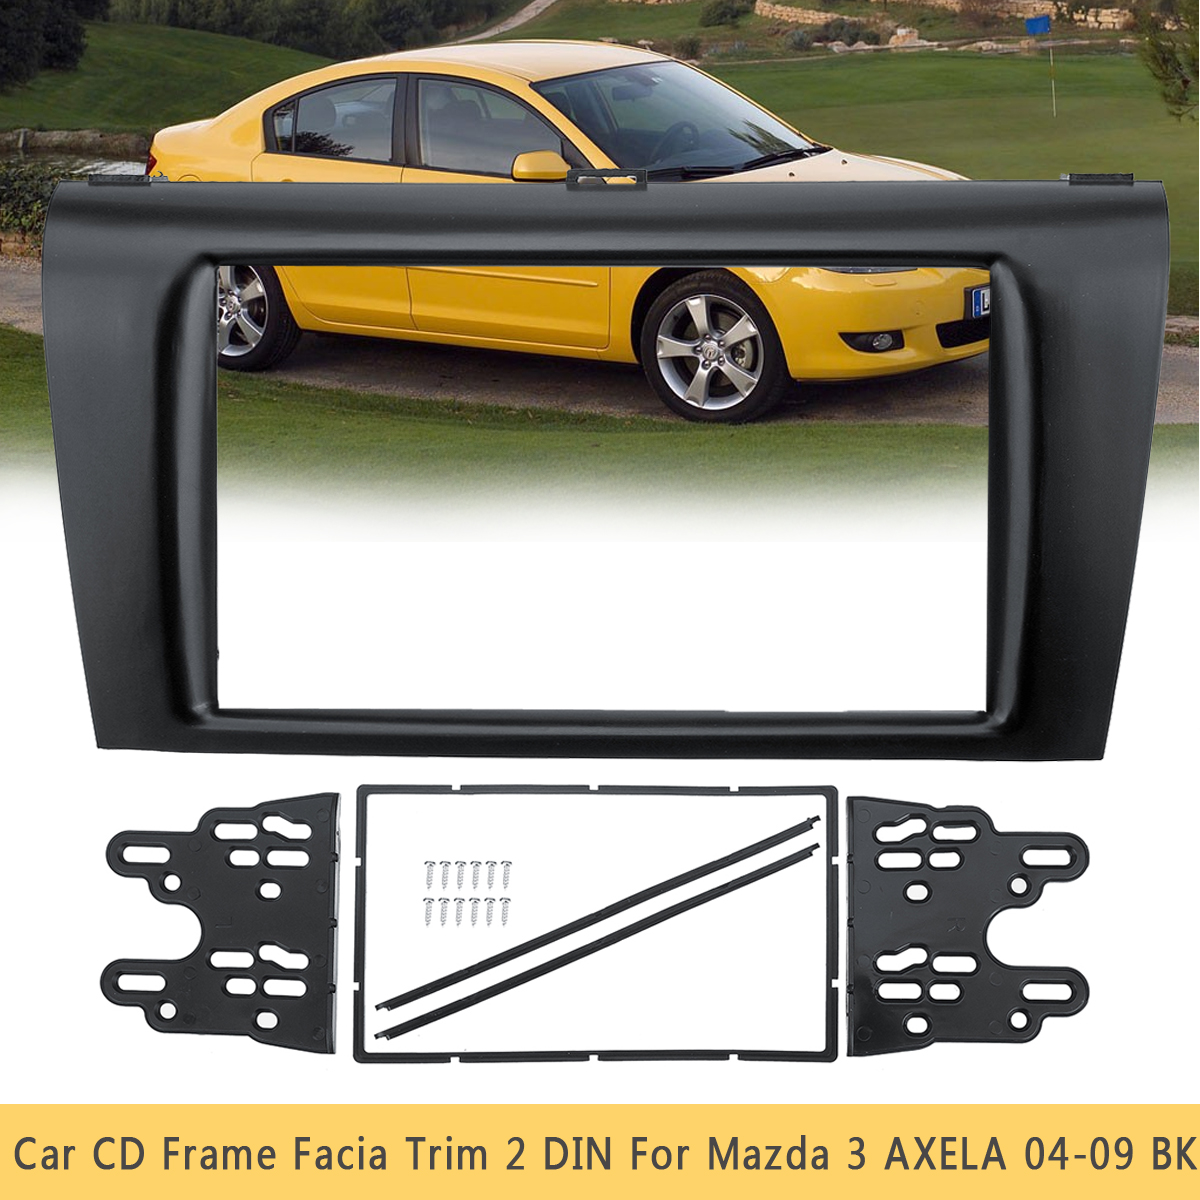 1 set Car Stereo <font><b>Radio</b></font> DVD CD Fascia Panel Panels Plate Trim Kit Frame 2 DIN For <font><b>Mazda</b></font> <font><b>3</b></font> AXELA 2004 2005 <font><b>2006</b></font> 2007 2008 2009 image